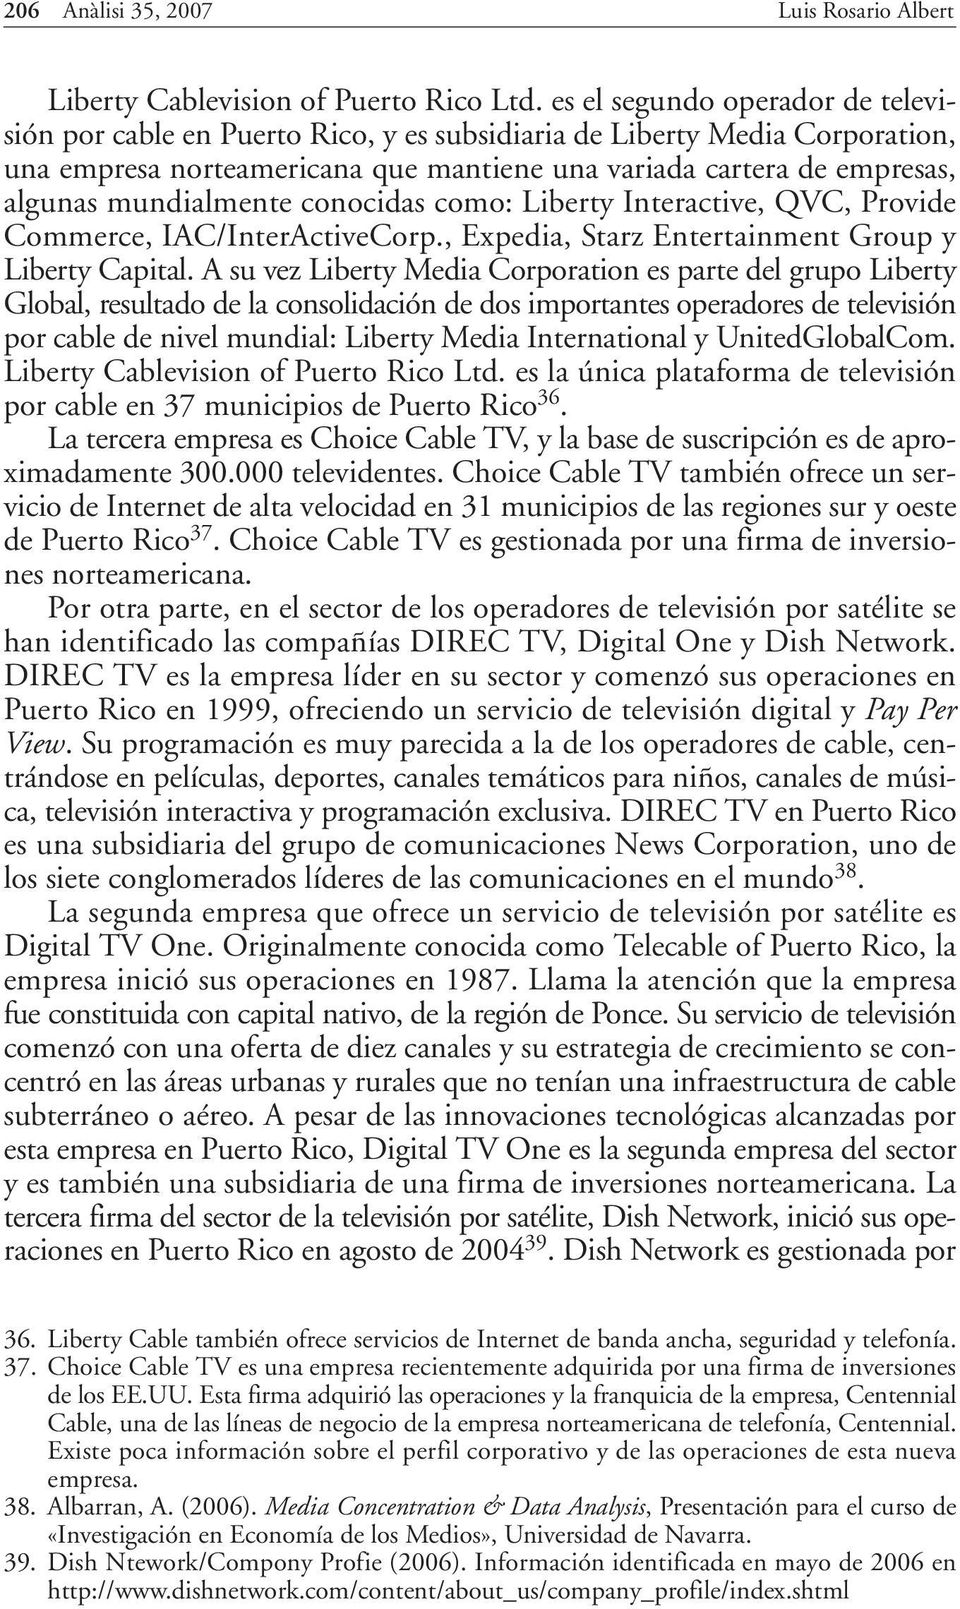 mundialmente conocidas como: Liberty Interactive, QVC, Provide Commerce, IAC/InterActiveCorp., Expedia, Starz Entertainment Group y Liberty Capital.